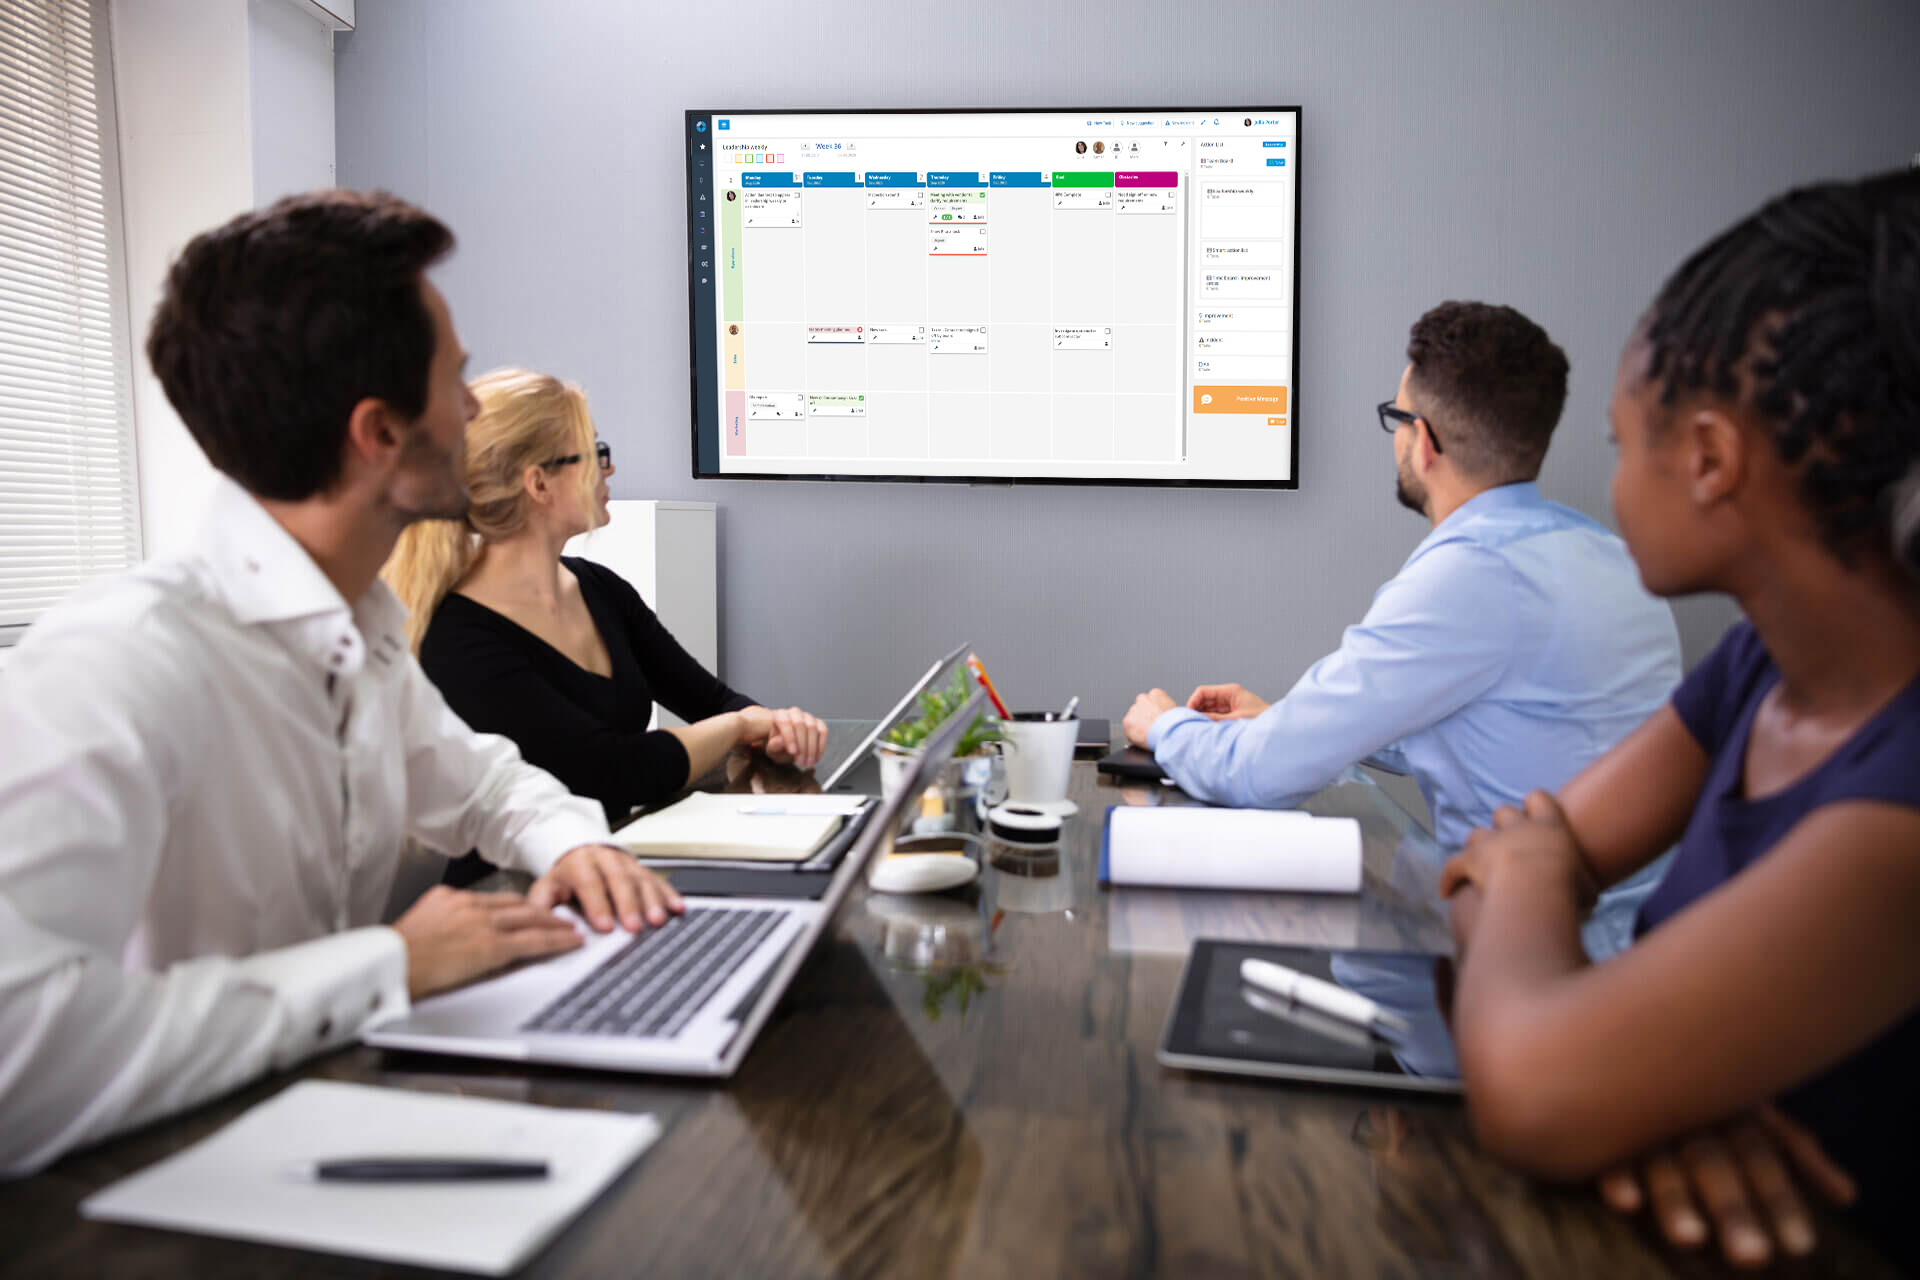 A four member team gathered in a meeting room with DigiLEAN on a wall monitor